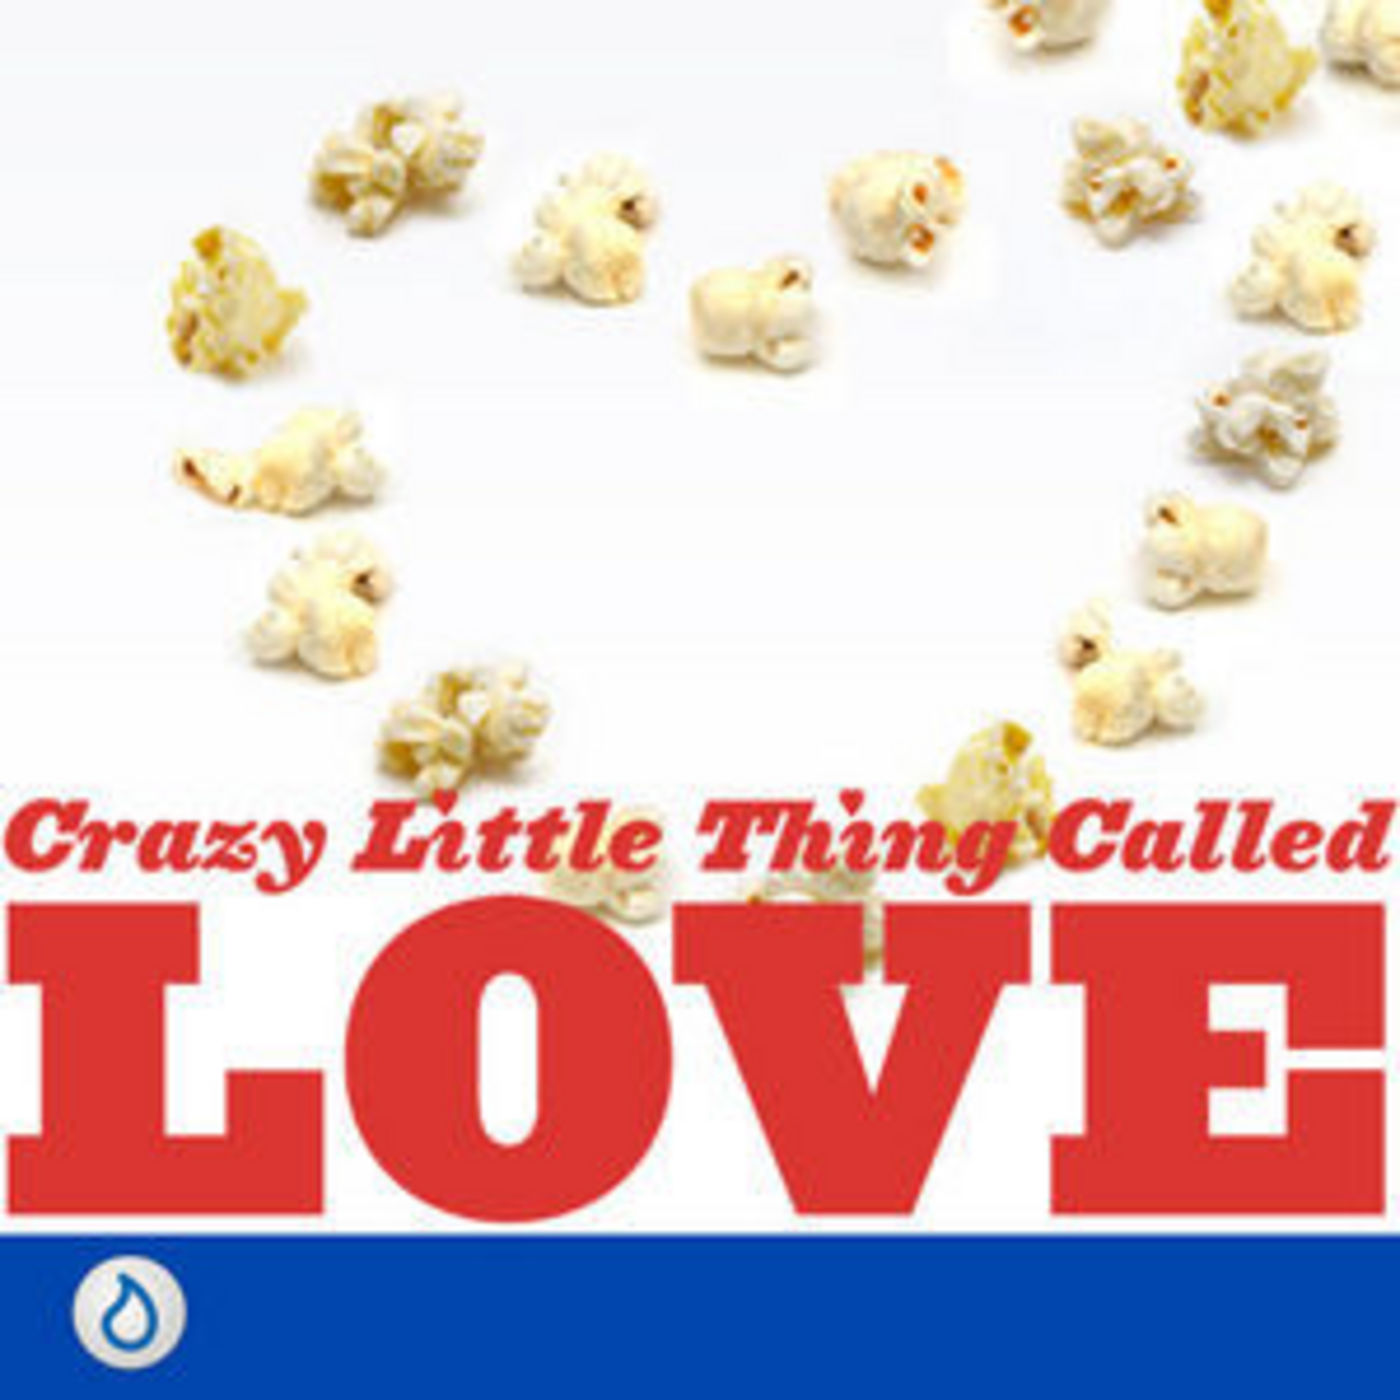 <![CDATA[Crazy Little Thing Called Love]]>